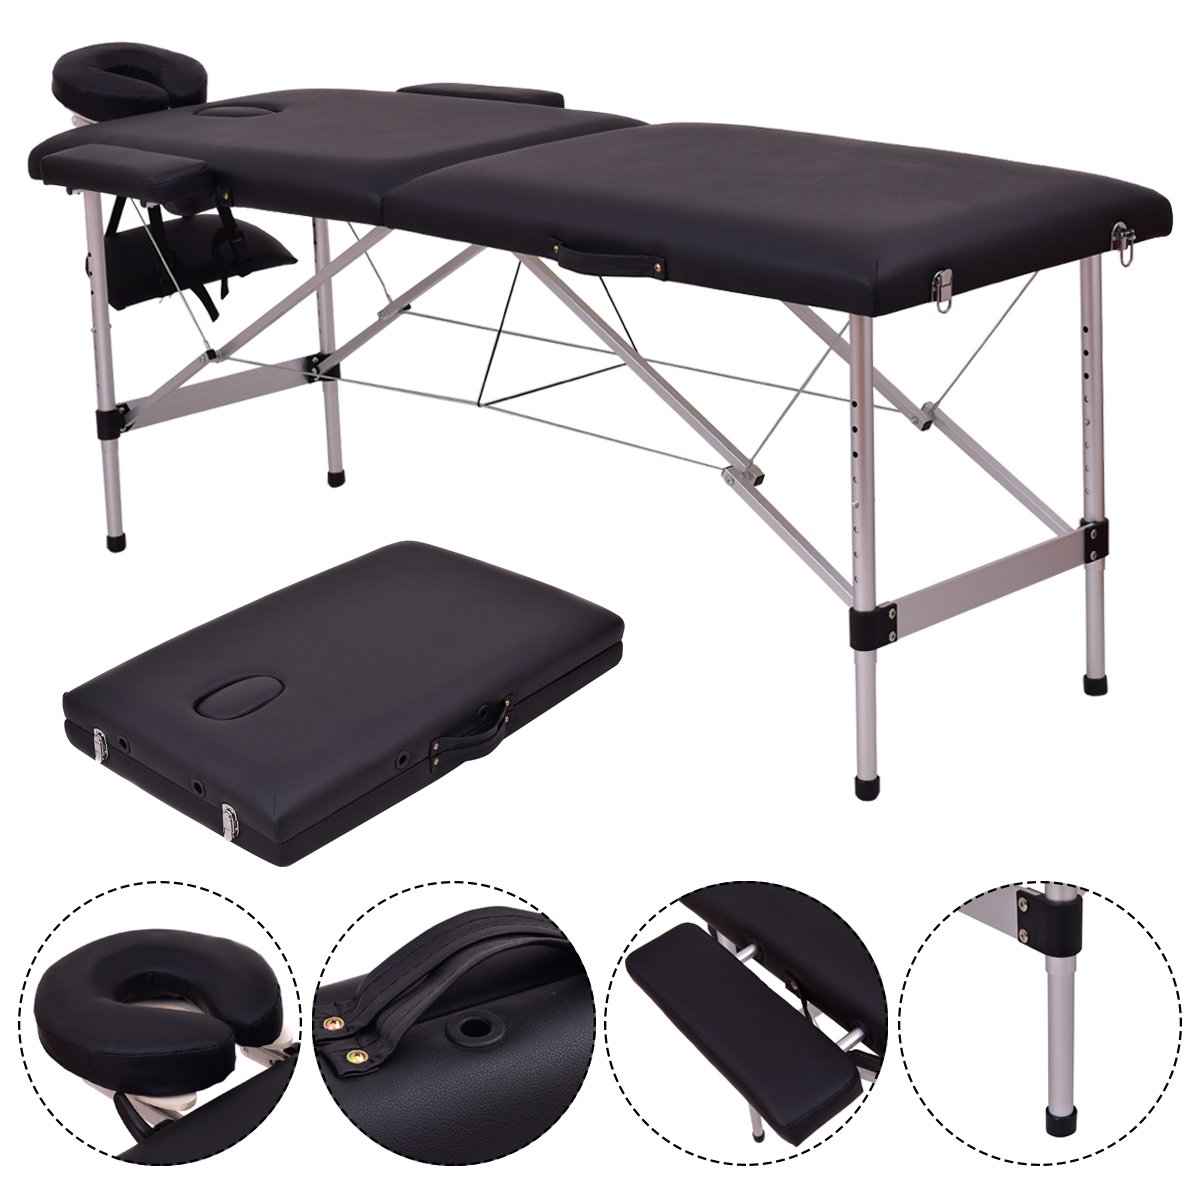 """Ktaxon 73""""-84"""" L x 24"""" W x 32"""" H 2 Section Folding Portable Lightweight Aluminum Massage Therapy Table, for Reiki Facial Spa Tattoo Physiotherapy, Only 35 lb, With Carry Case"""